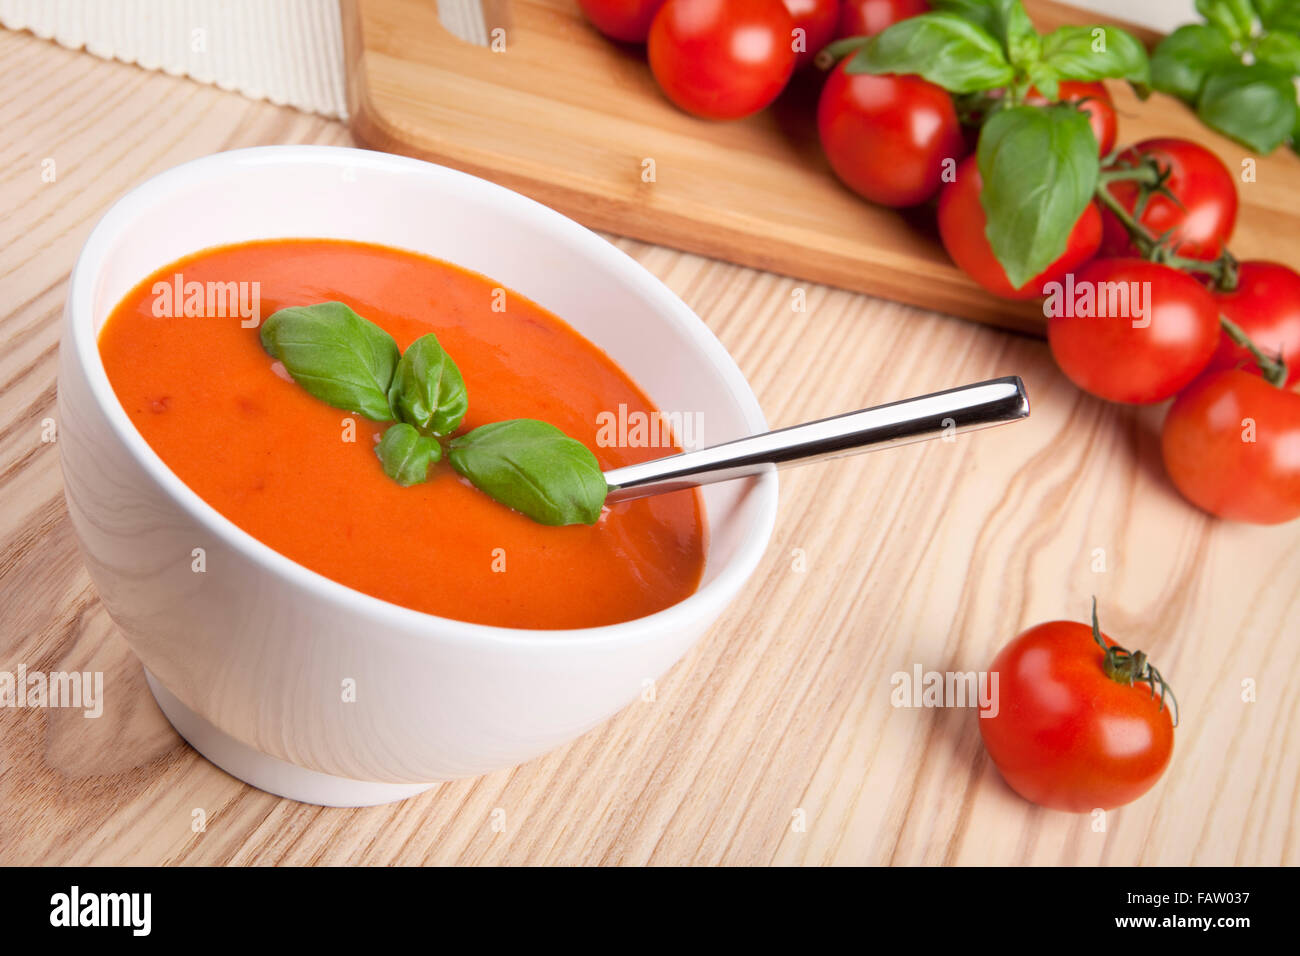 Tomato soup with basil in a bowl. - Stock Image